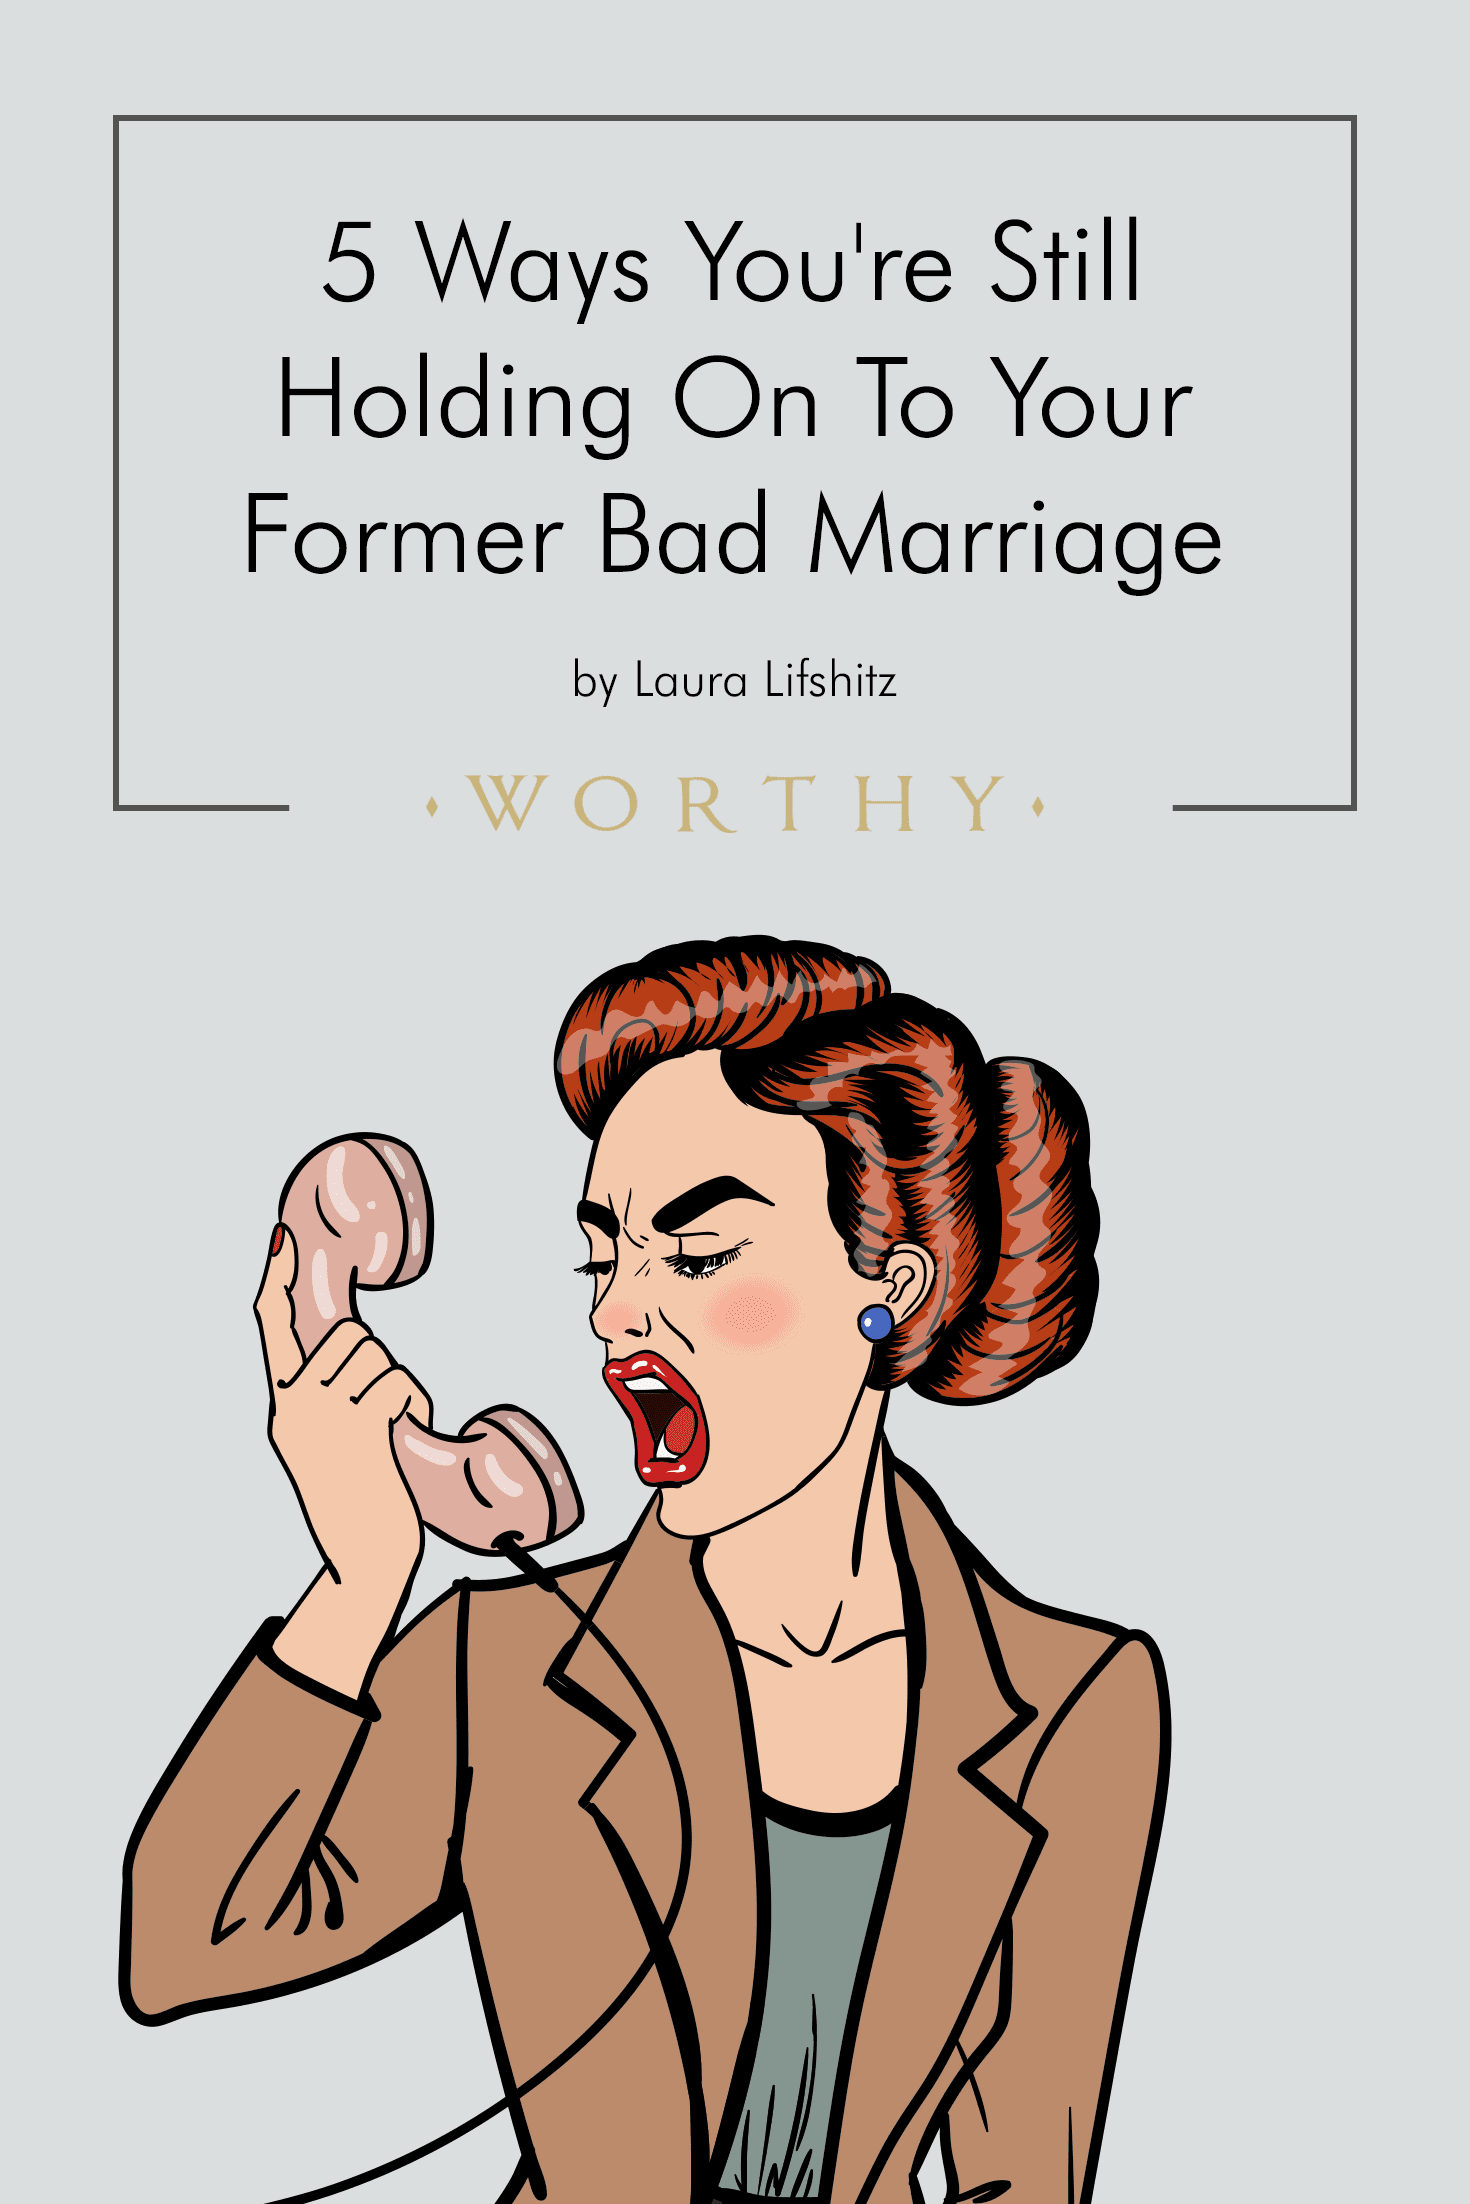 You've cut the cord legally, but your hands might still be dirty with the toxicity of your former marriage. Here are 5 signs you're still holding on...